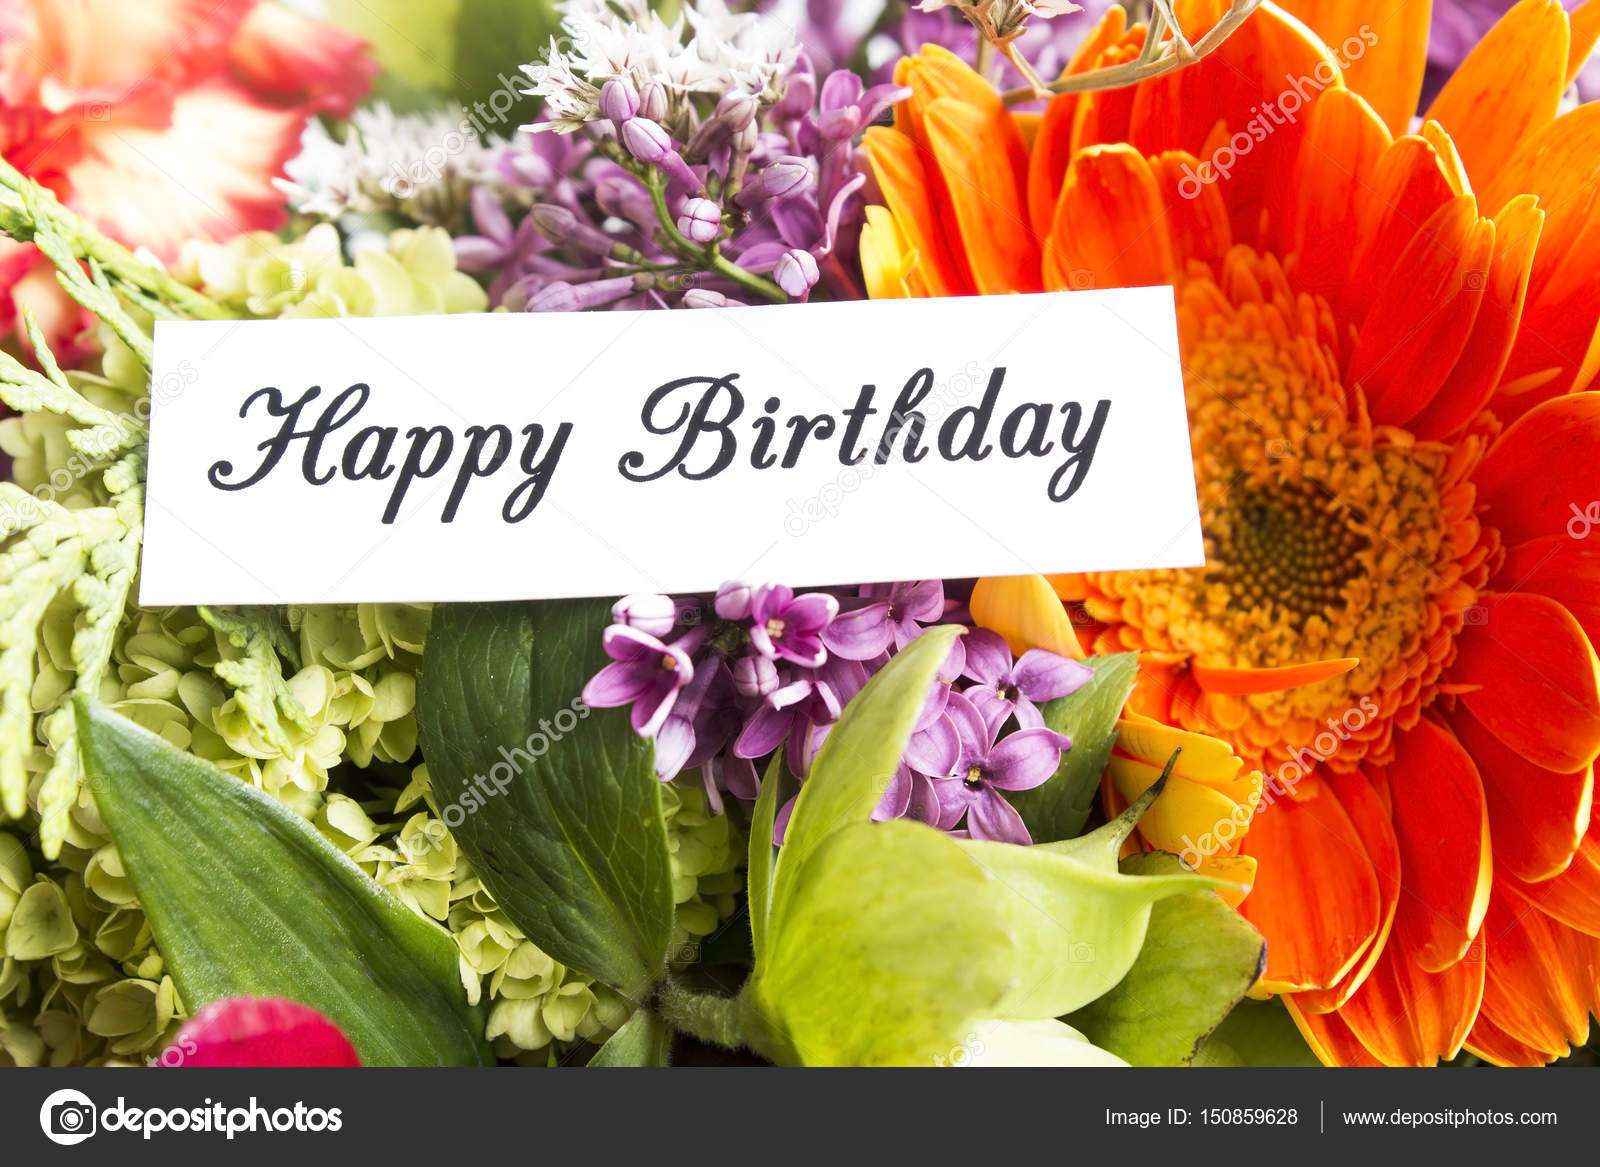 Happy Birthday Card Withf Spring Flowers Stock Photo Simonida